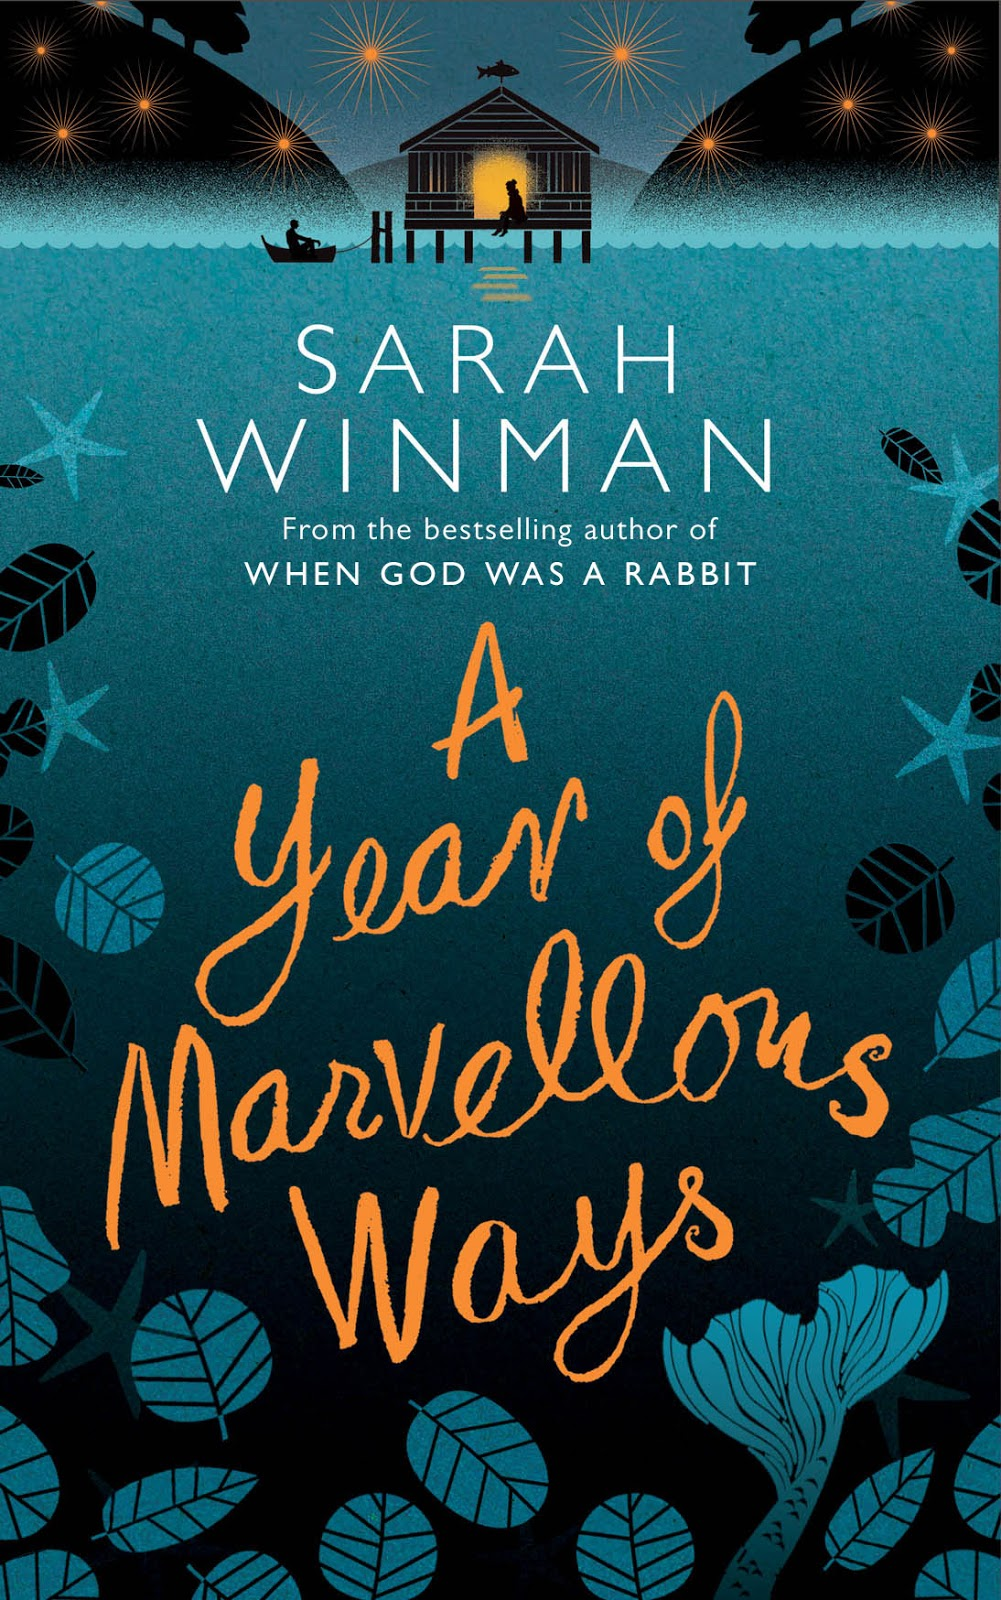 curiosity killed the bookworm a year of marvellous ways a year of marvellous ways